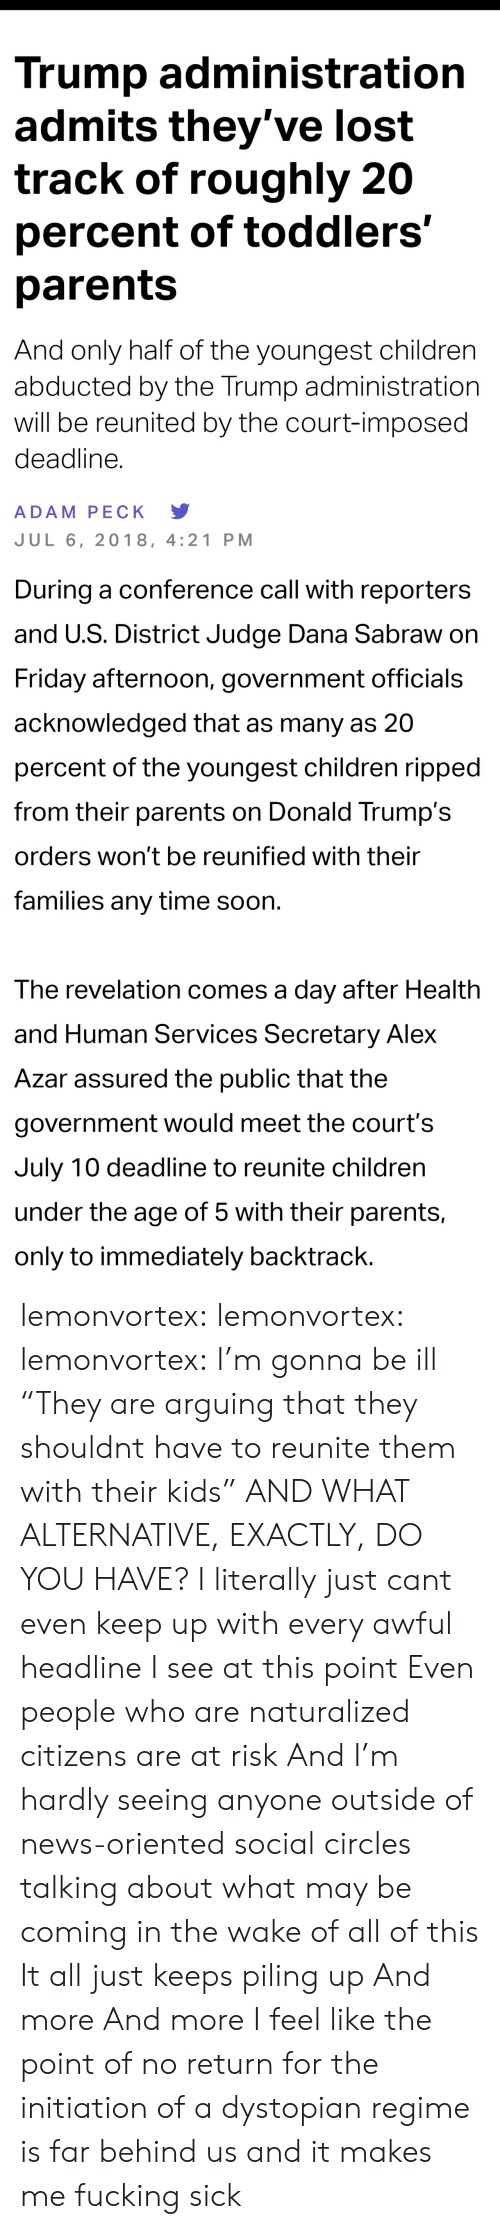 """Minorities: Trump administratiorn  admits they've lost  track of roughly 20  percent of toddlers'  parents  And only half of the youngest children  abducted by the Trump administration  will be reunited by the court-imposed  deadline.  ADAM PECK Y  JUL 6, 2018, 4:21 PM   During a conference call with reporters  and U.S. District Judge Dana Sabraw on  Friday afternoon, government officials  acknowledged that as many as 20  percent of the youngest children ripped  from their parents on Donald Trump's  orders won't be reunified with their  families any time soon  The revelation comes a day after Health  and Human Services Secretary Alex  Azar assured the public that the  government would meet the court's  July 10 deadline to reunite children  under the age of 5 with their parents,  only to immediately backtrack lemonvortex:  lemonvortex:   lemonvortex:  I'm gonna be ill   """"They are arguing that they shouldnt have to reunite them with their kids""""  AND WHAT ALTERNATIVE, EXACTLY, DO YOU HAVE?   I literally just cant even keep up with every awful headline I see at this point  Even people who are naturalized citizens are at risk  And I'm hardly seeing anyone outside of news-oriented social circles talking about what may be coming in the wake of all of this  It all just keeps piling up  And more  And more  I feel like the point of no return for the initiation of a dystopian regime is far behind us and it makes me fucking sick"""